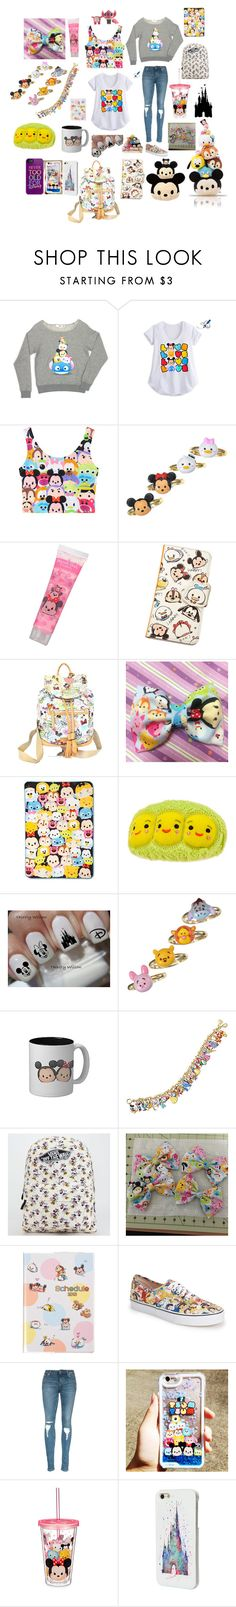 """Tsum Tsum Look✨"" by macaulere ❤ liked on Polyvore featuring Disney, Dooney & Bourke, The Bradford Exchange and Vans"